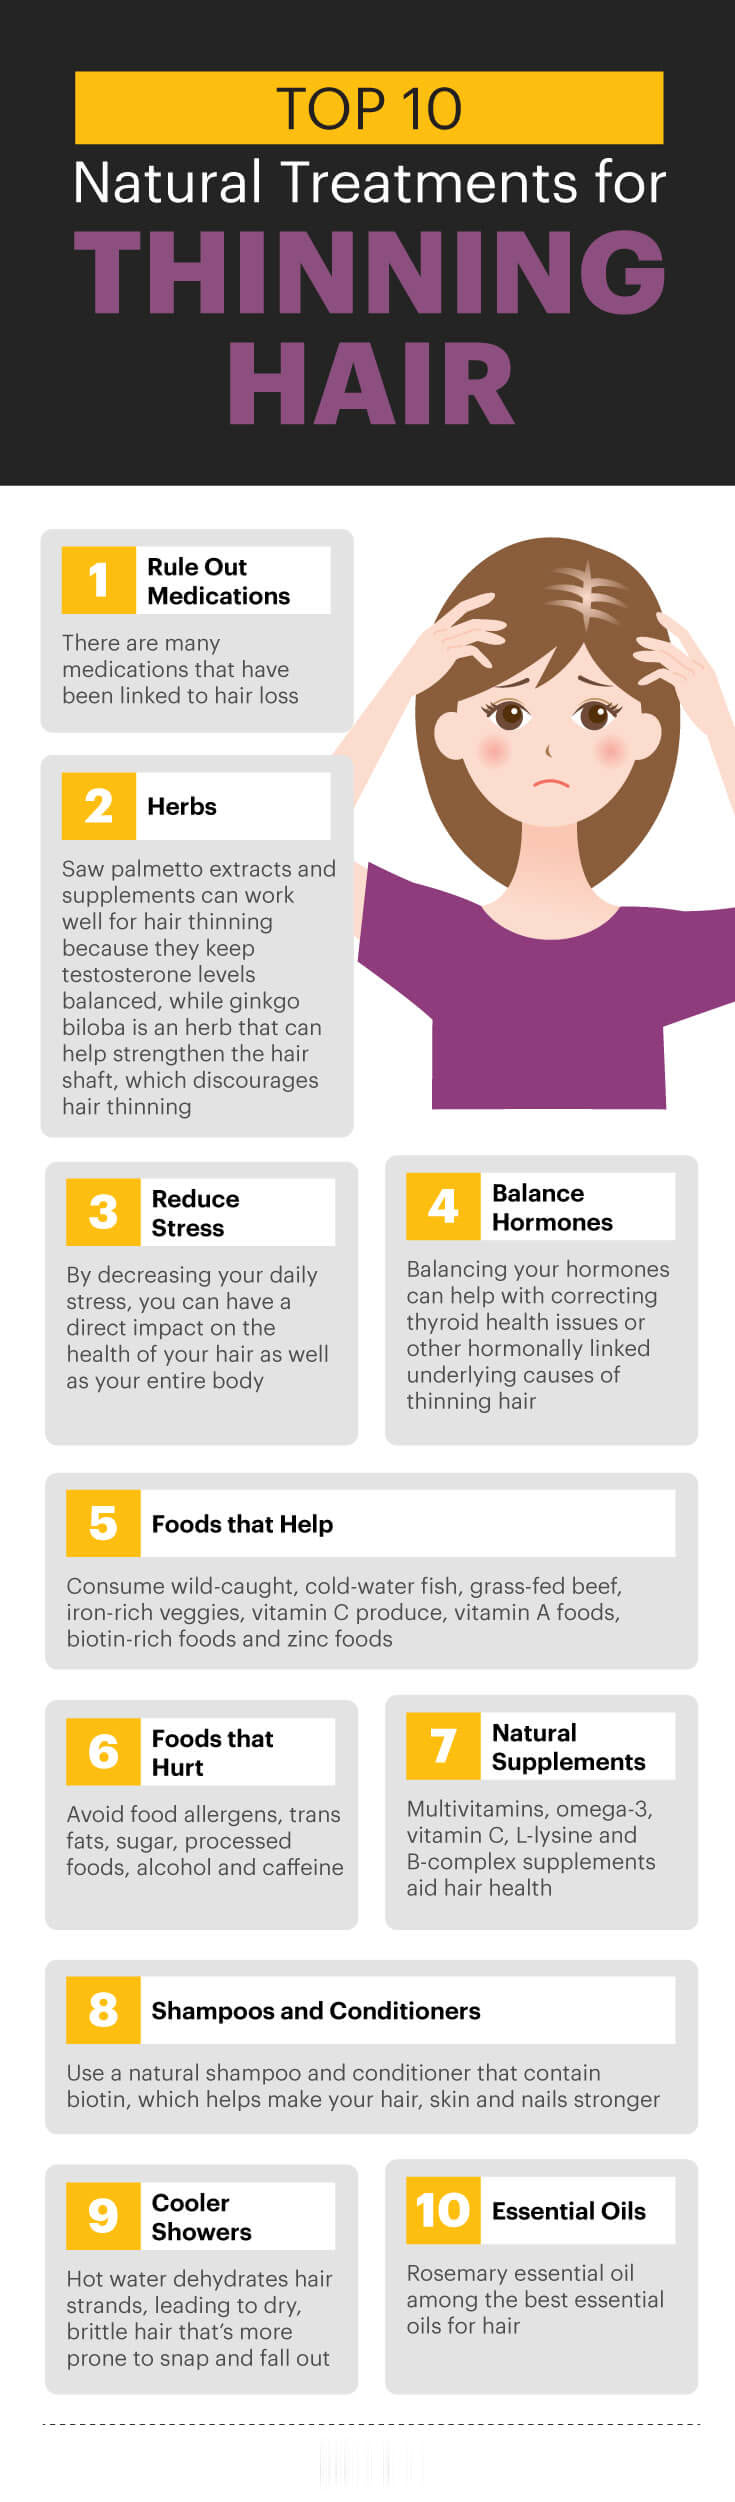 10 natural treatments for thinning hair - MKexpress.net